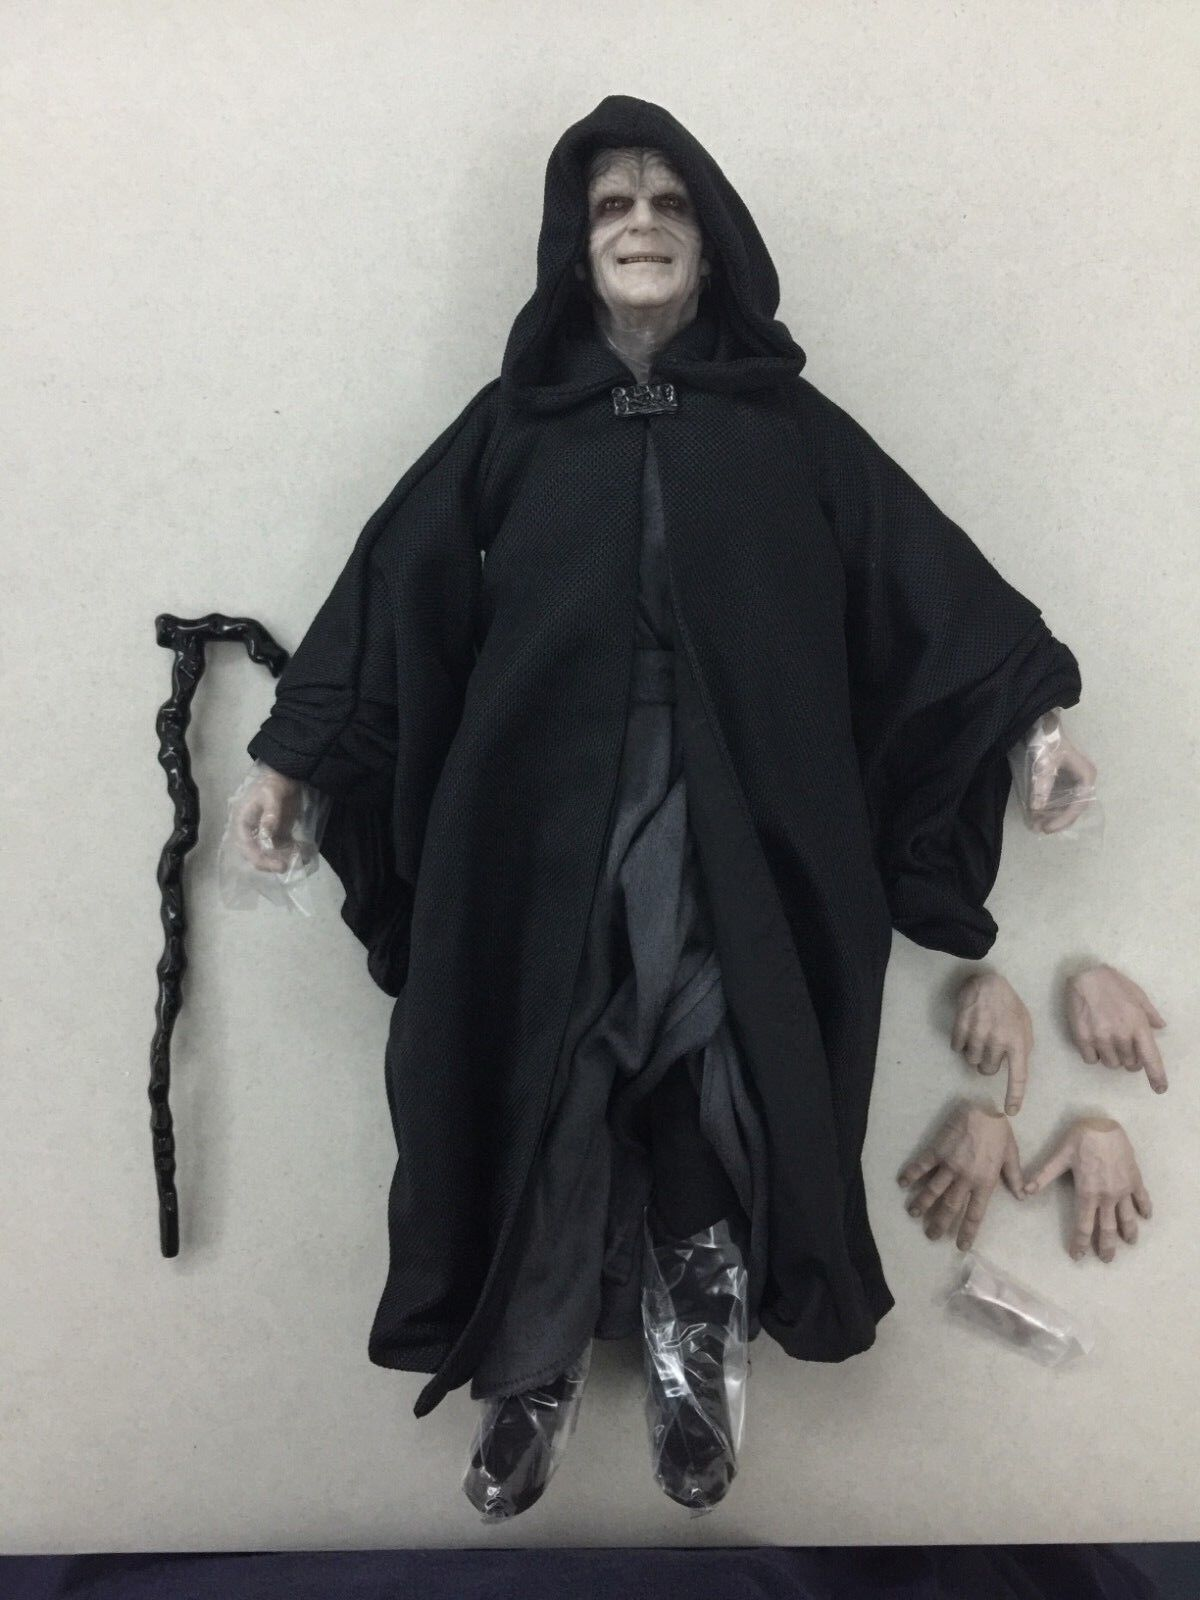 Hottoys Star Wars Empereur Palpatine MMS468 - 1 6th scale figure seulement